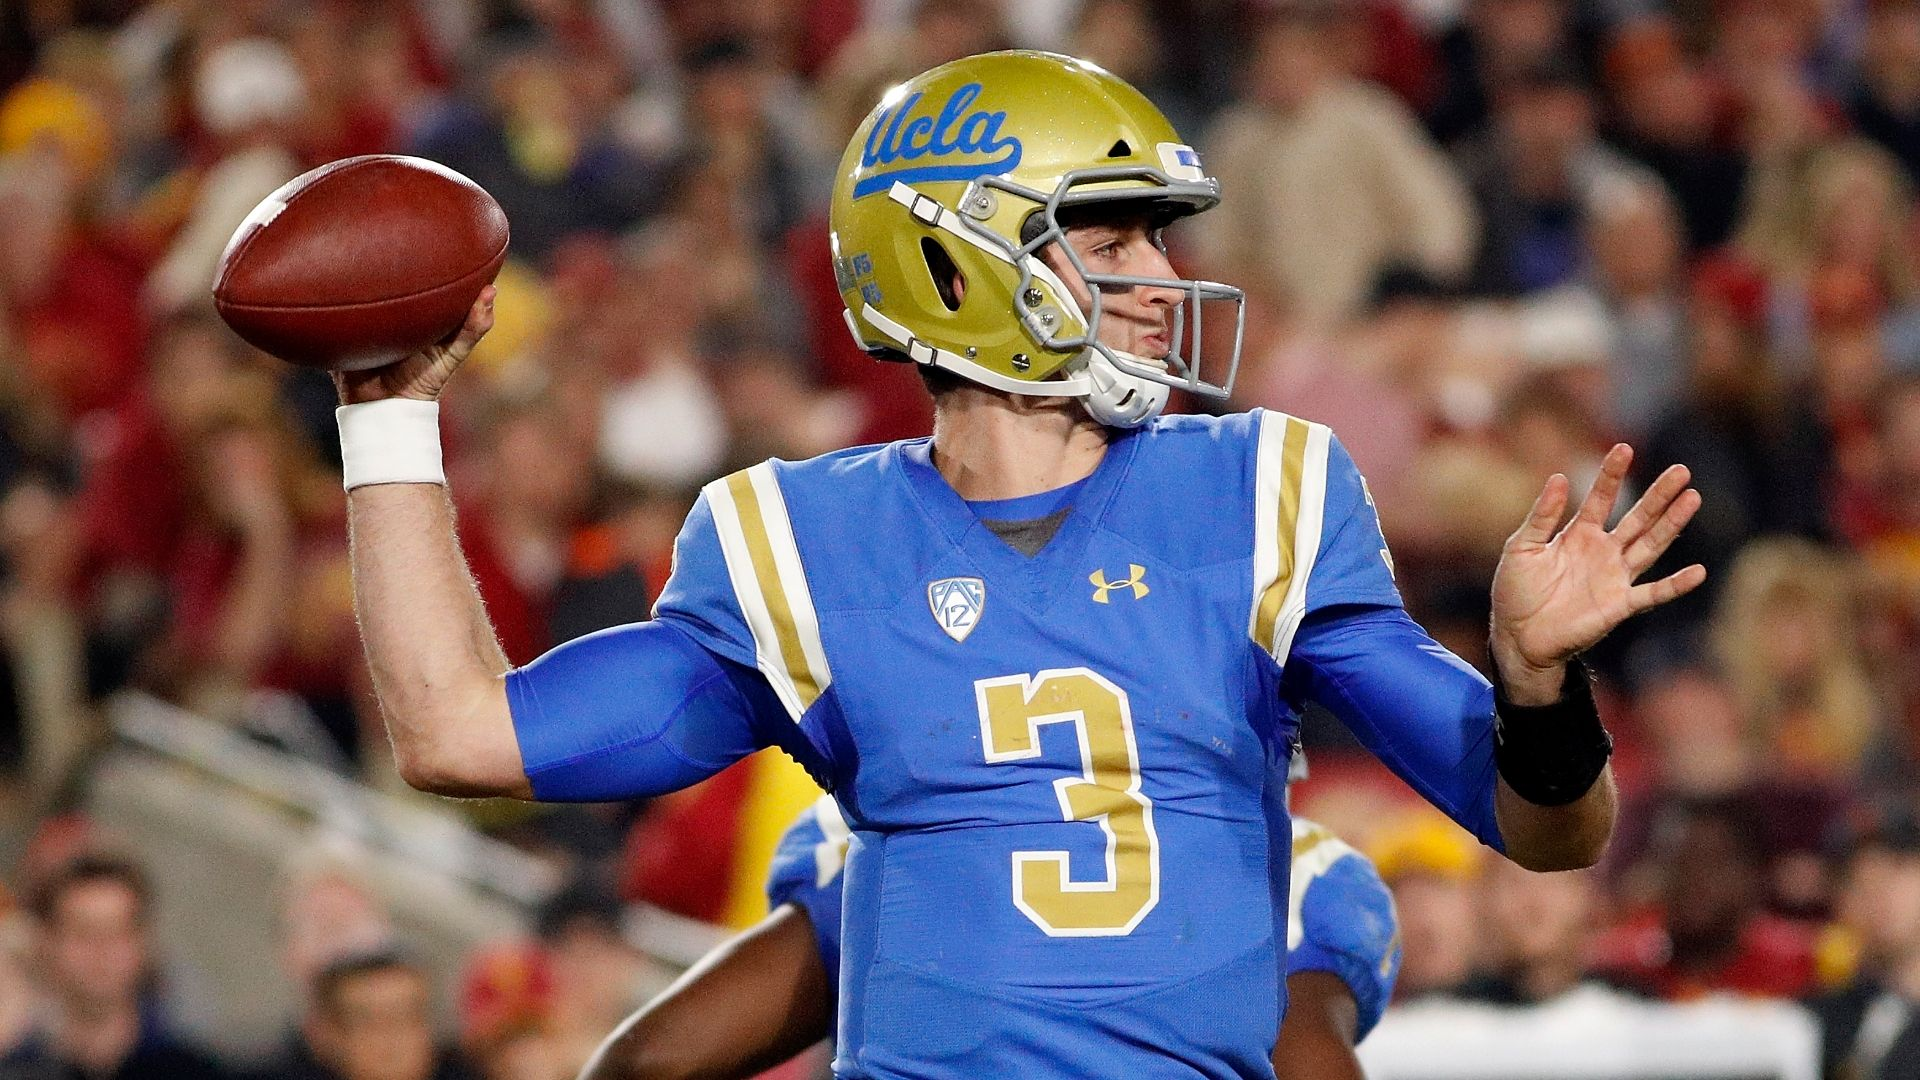 Rosen's mechanics could make him No. 1 overall pick